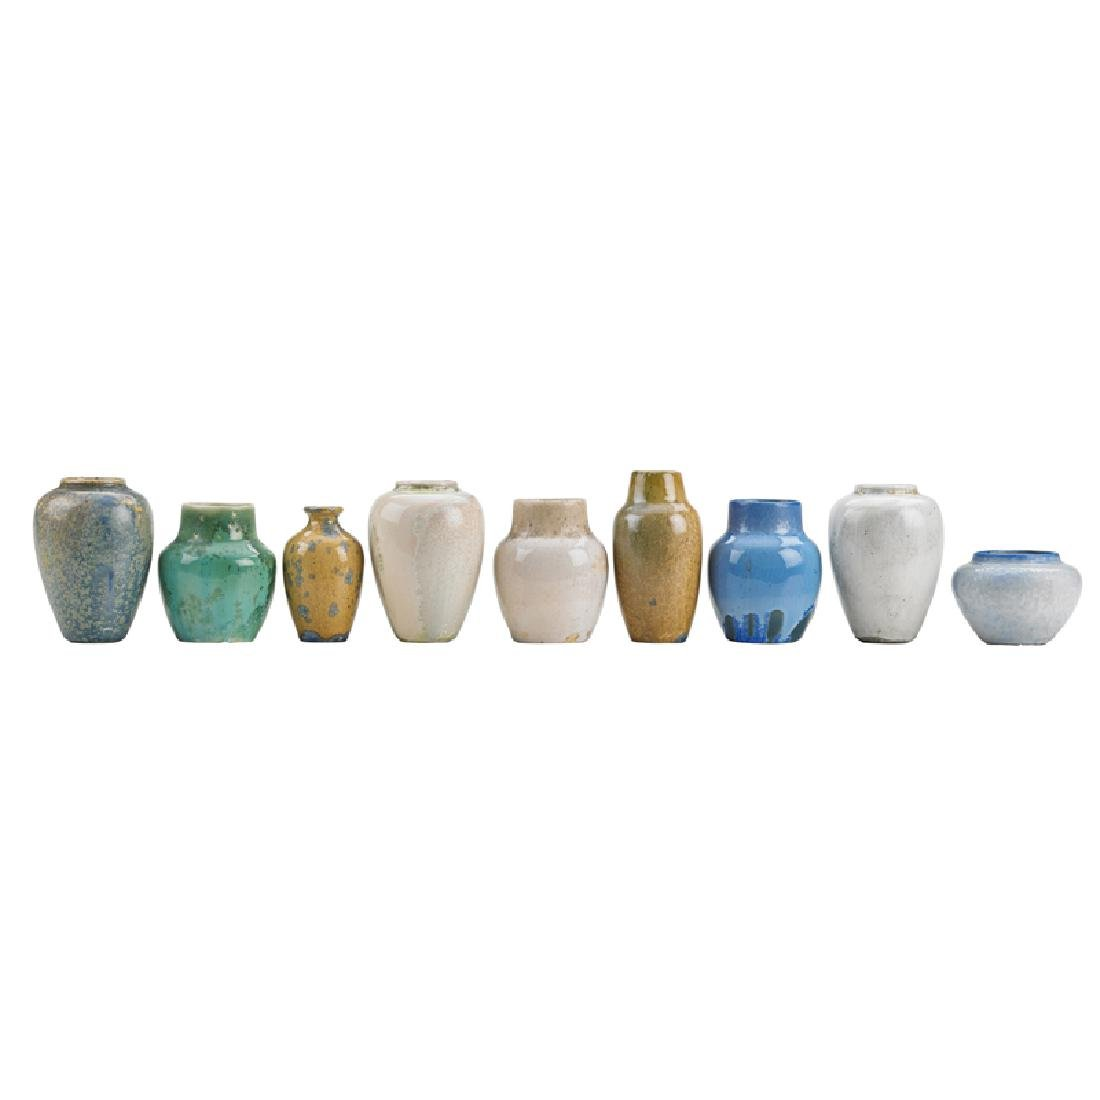 ADELAIDE ROBINEAU Nine small cast glaze test vases